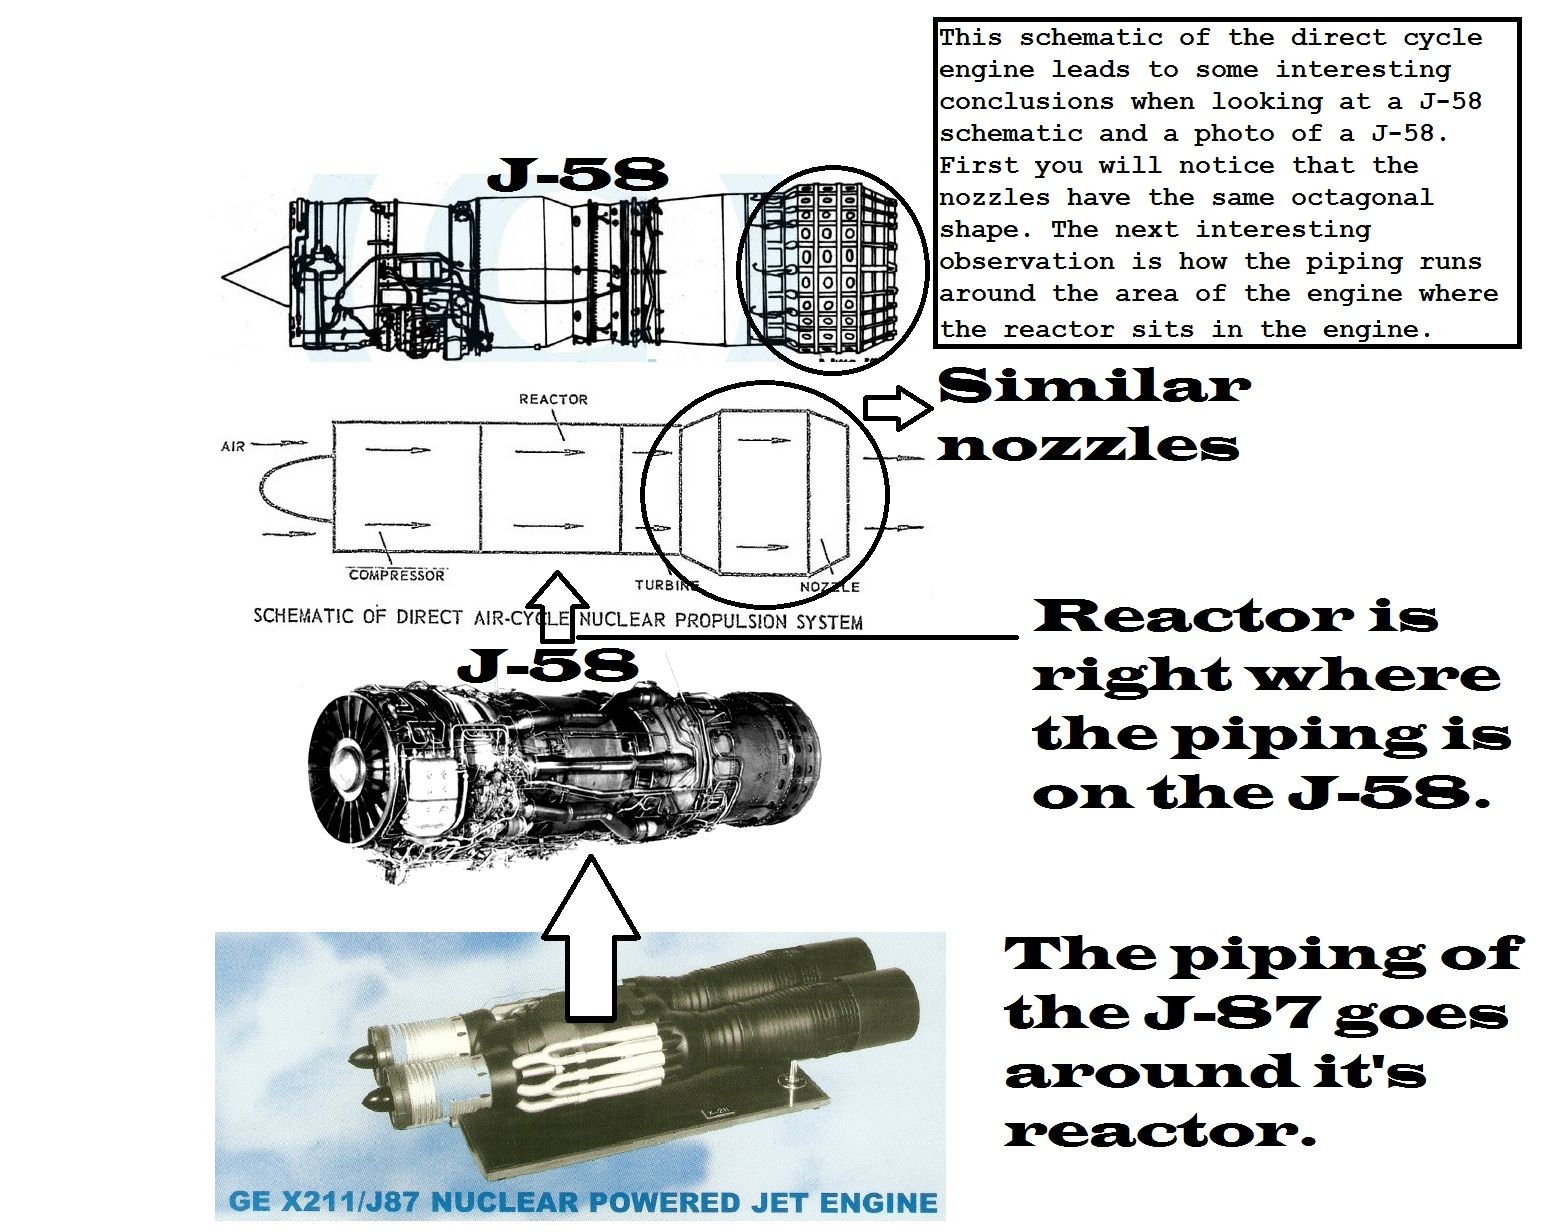 Area 51 Is The Home Of Americas Nuclear Aero Space Program J 58 Turbojet Engine Diagram Was A Direct Cycle